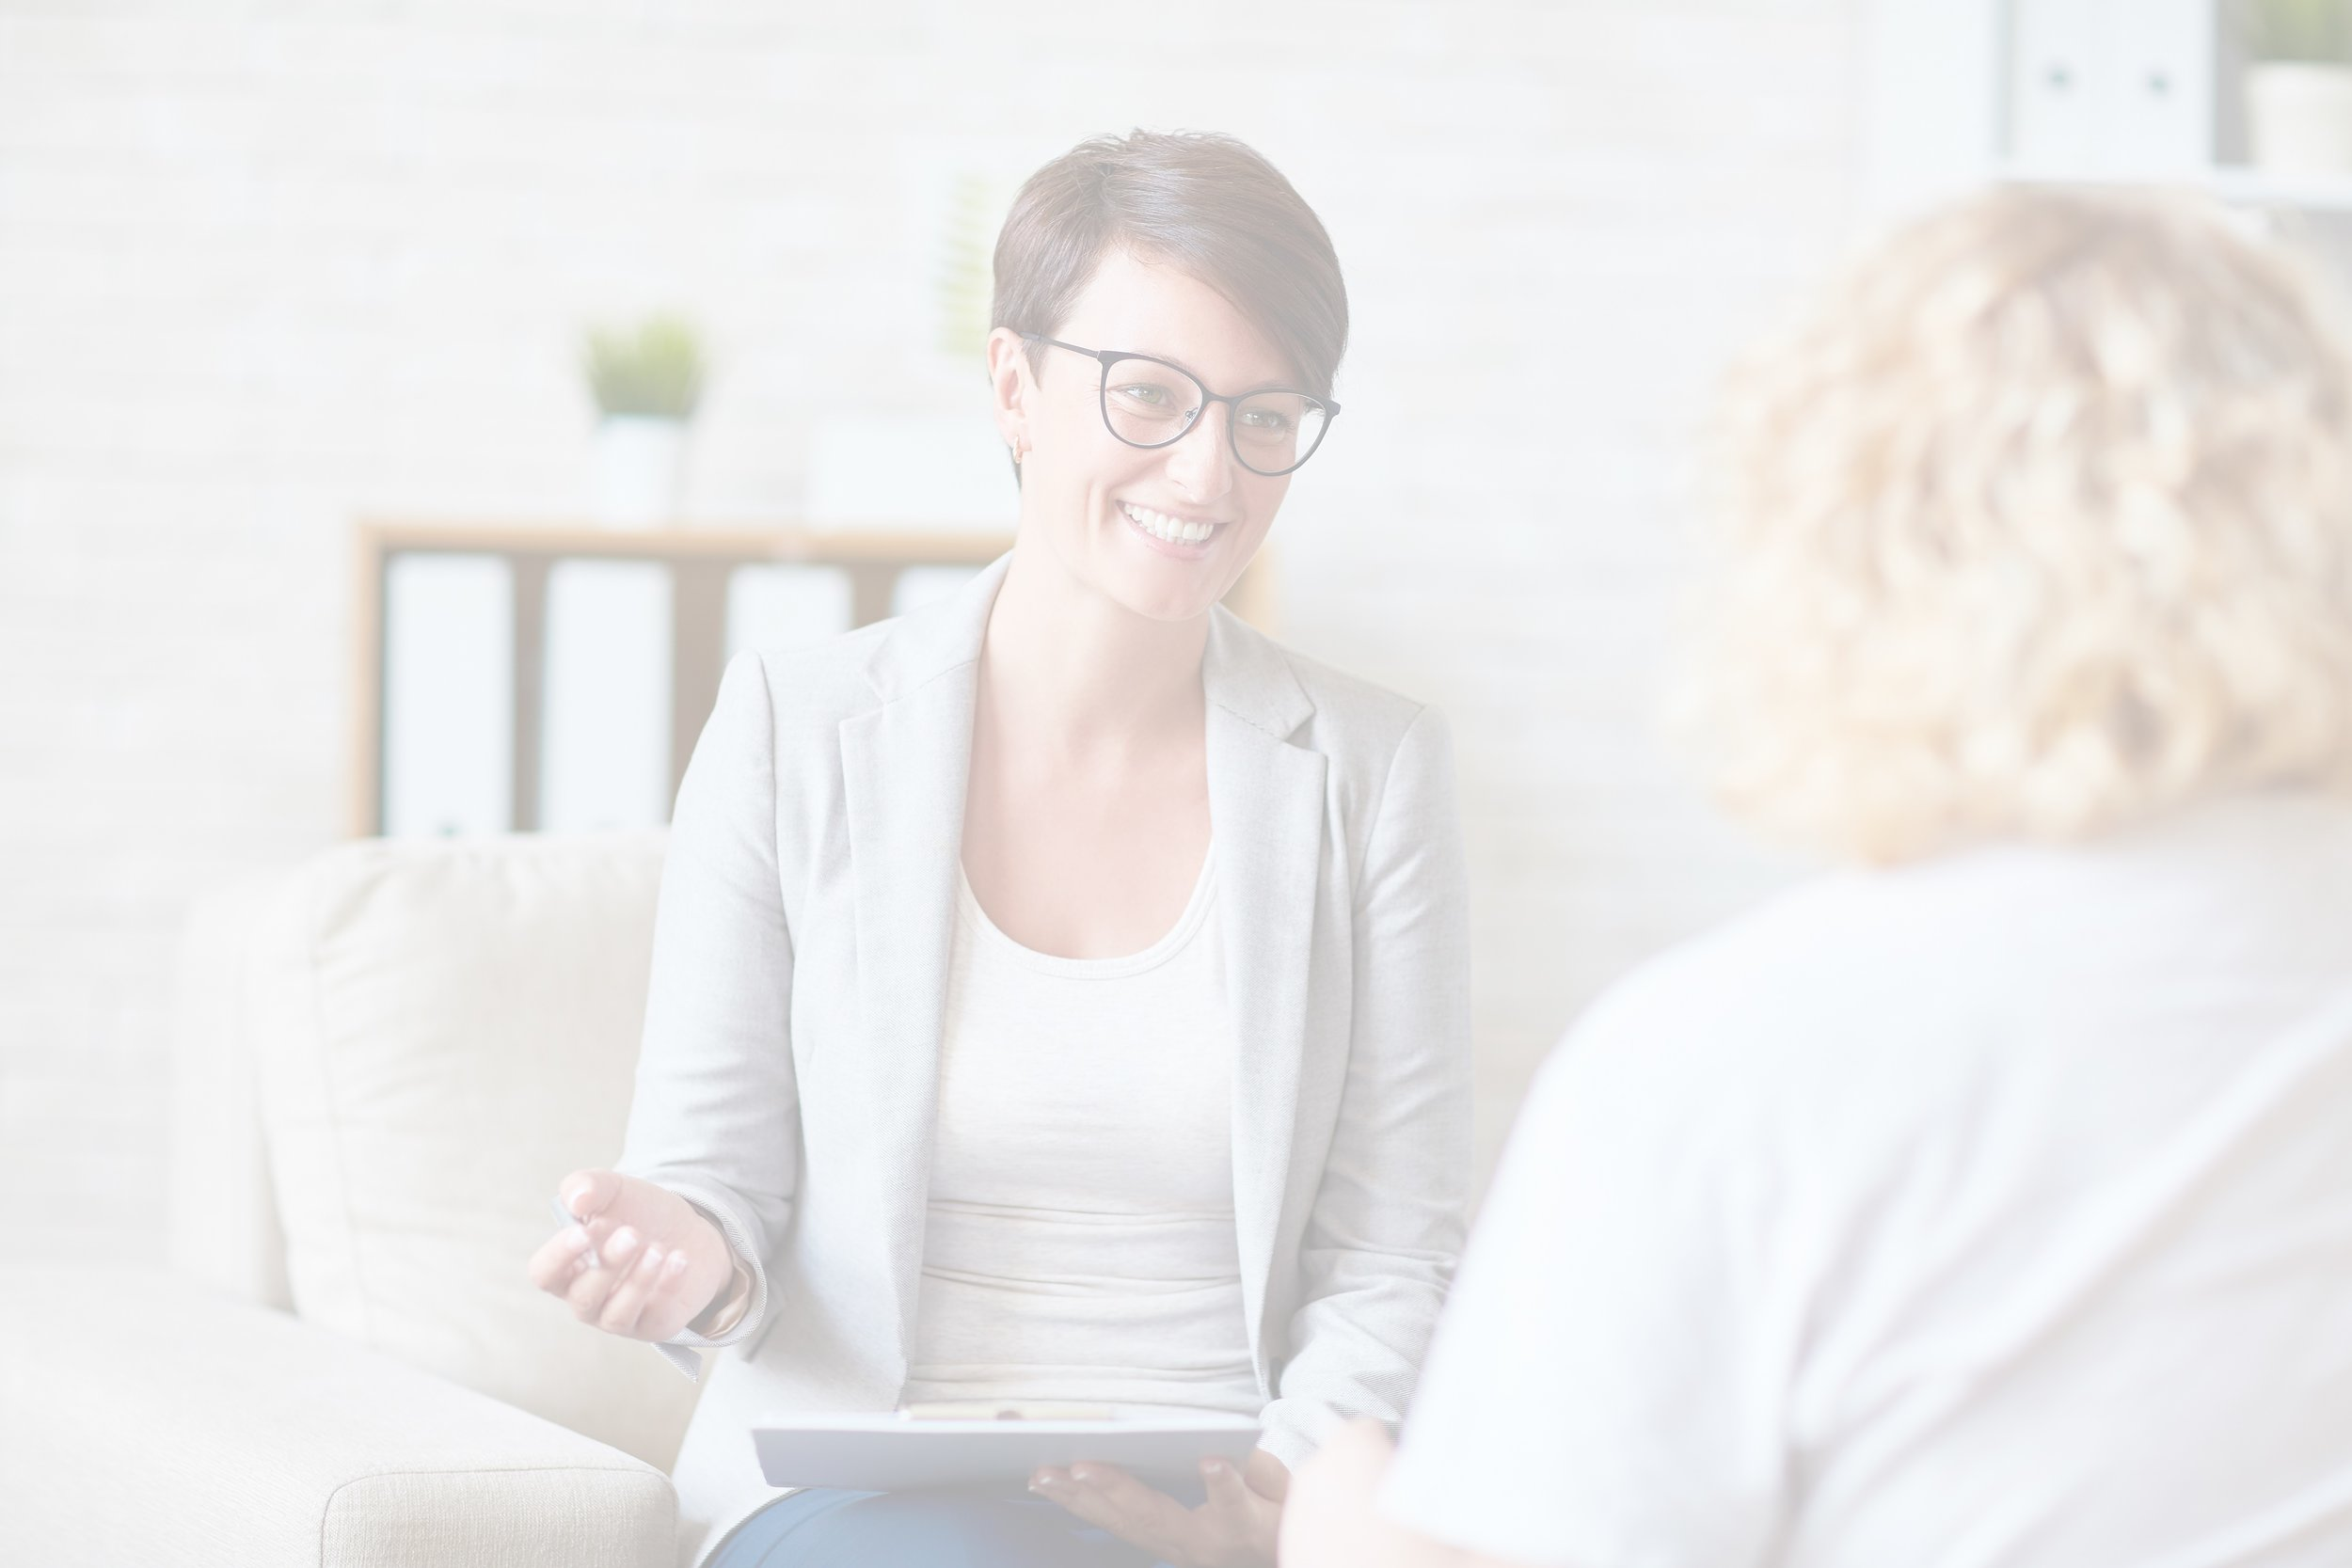 Find counseling near you. - Get started with three simple steps.